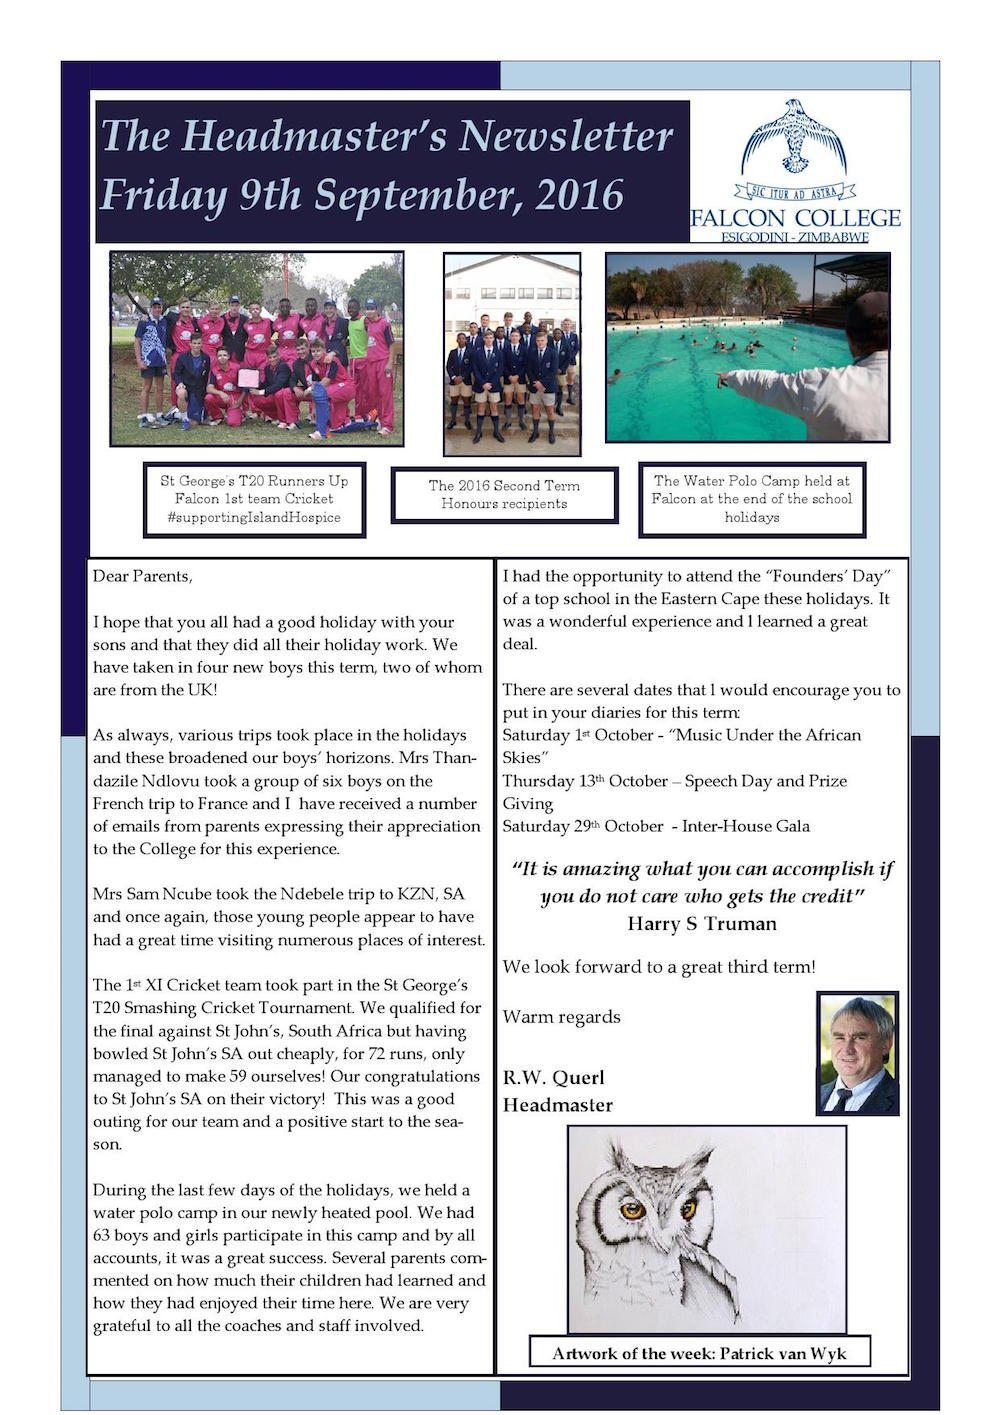 headmasters-newsletter-friday-9th-september-2016-edited_000001